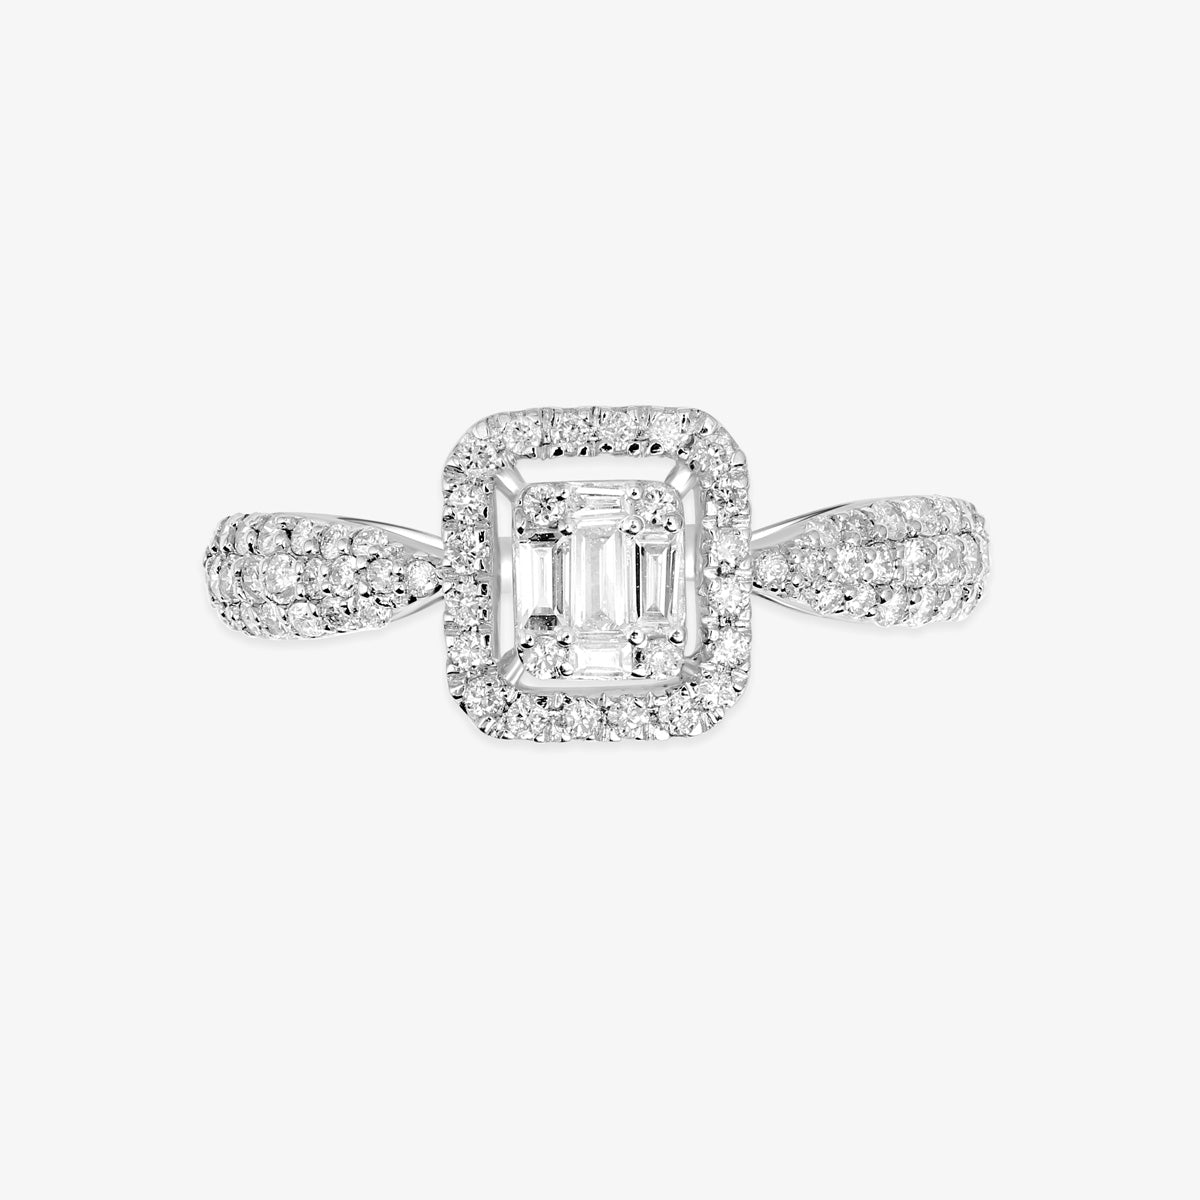 Cushion Cut Halo Diamond Ring with Baguette And Round Diamonds - estellacollection